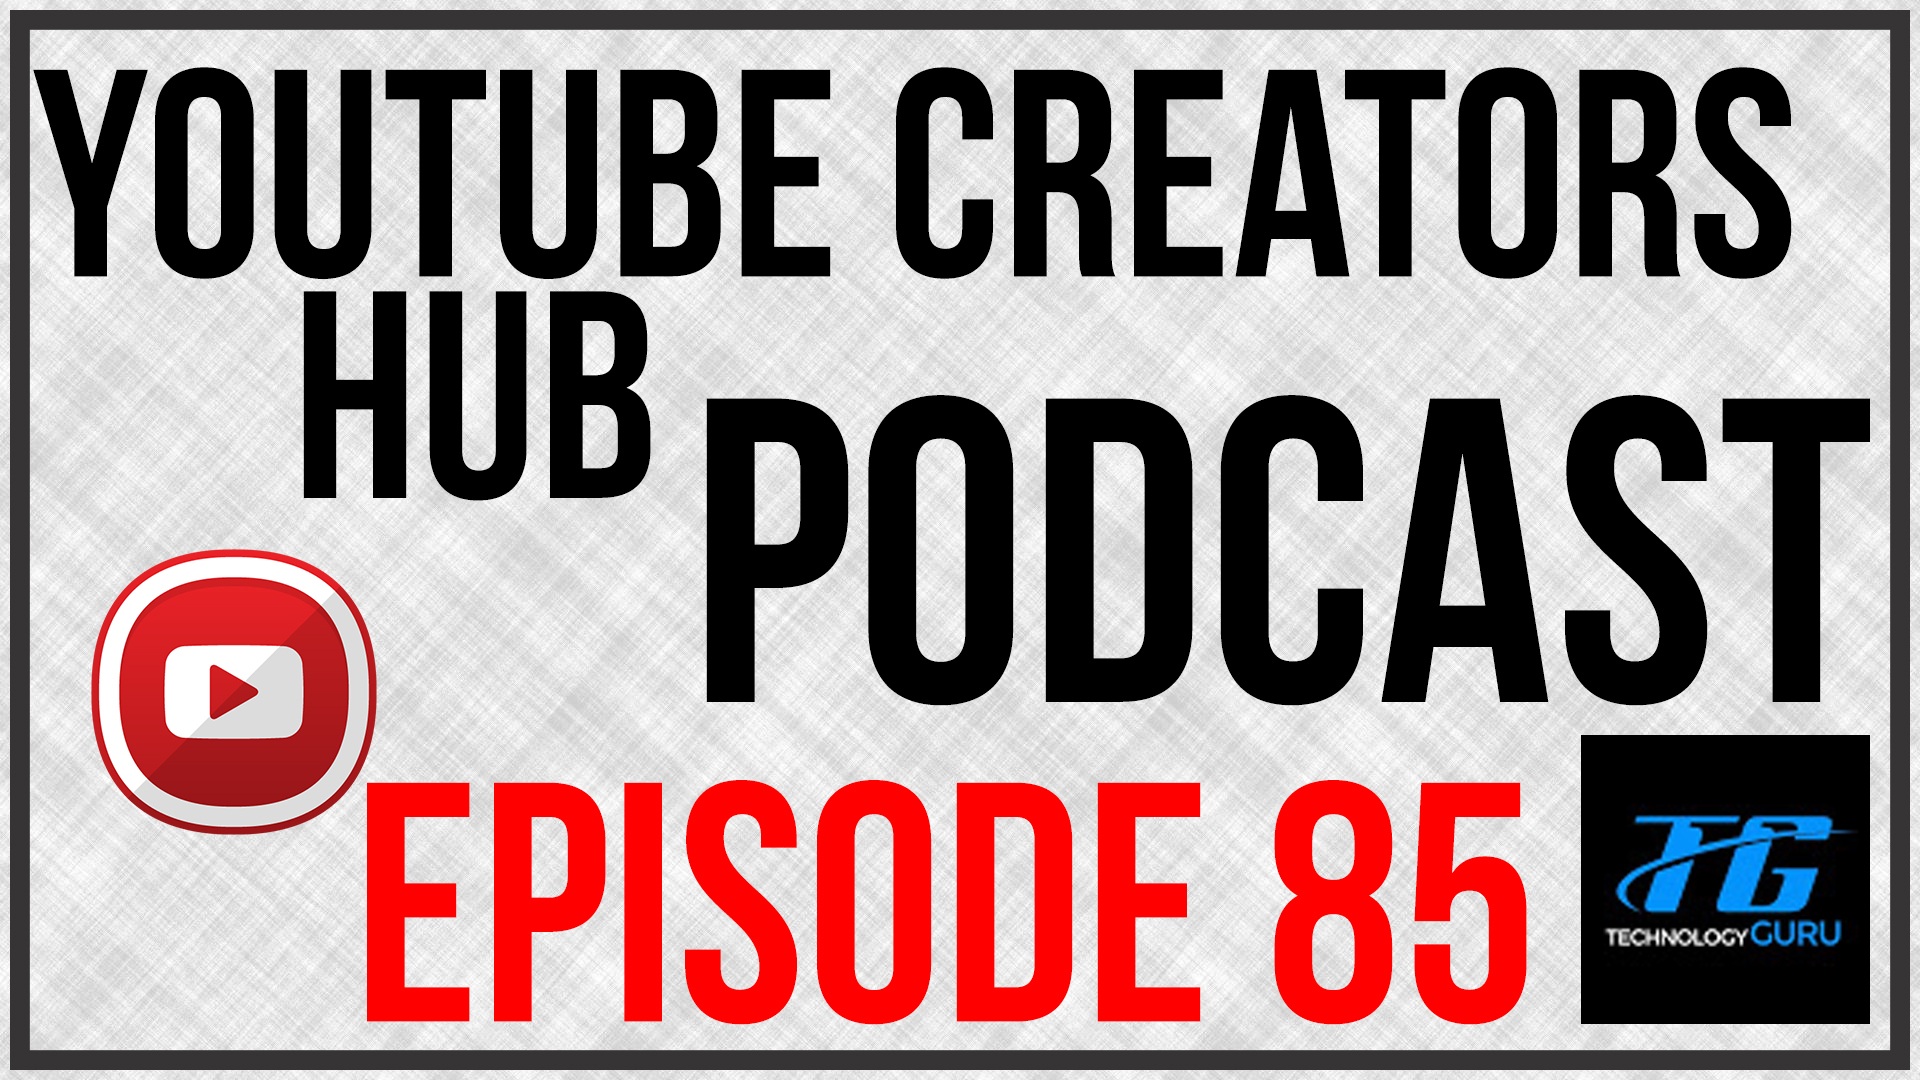 YouTube Creators Hub Episode 85